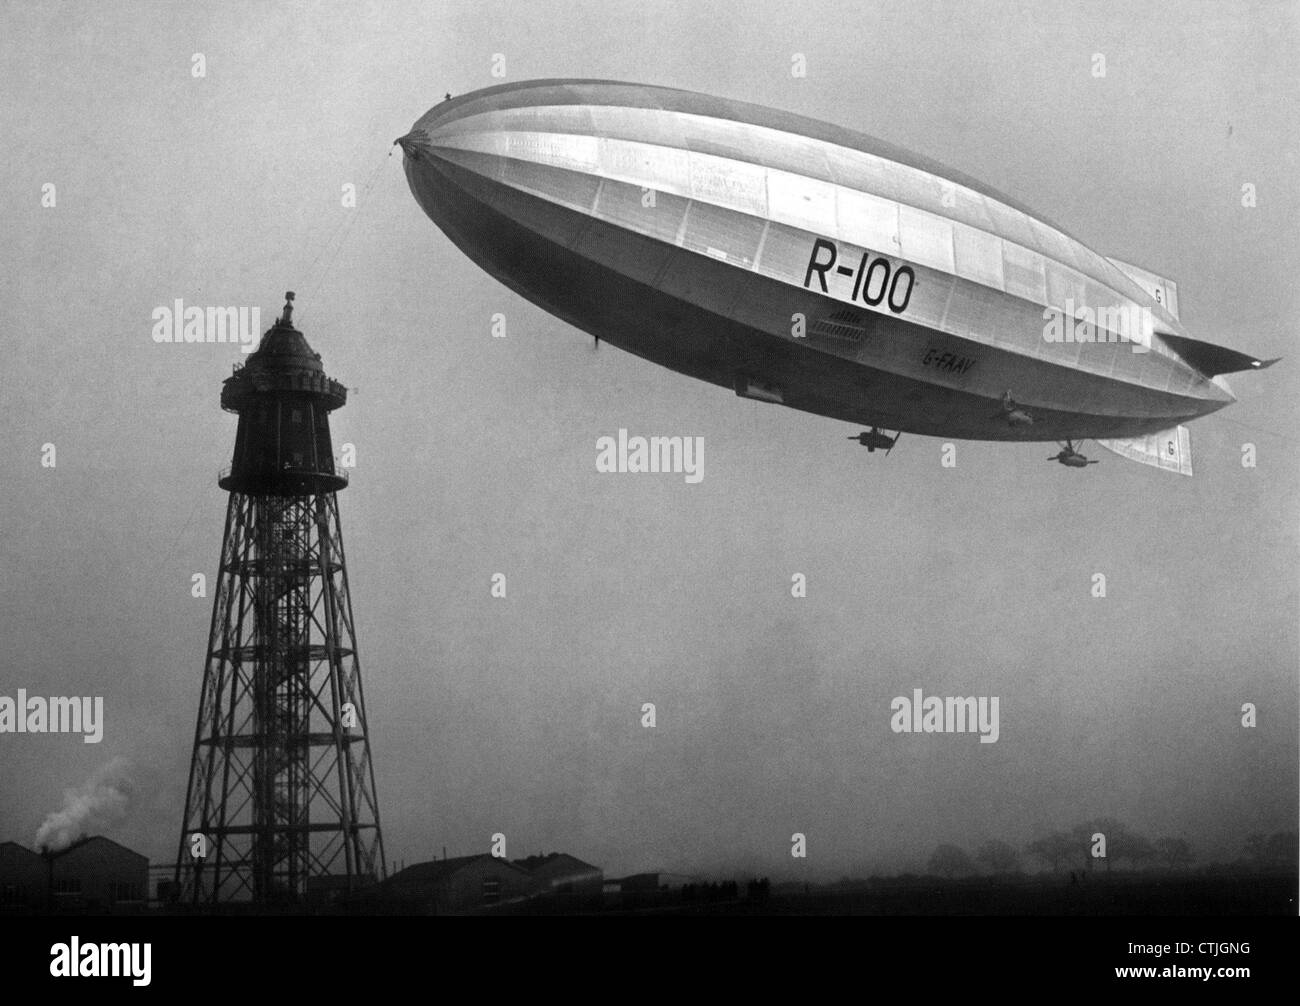 R-100 airship preparing to link with the mooring mast at Cardington, Bedforshire, England, in December 1929 - Stock Image